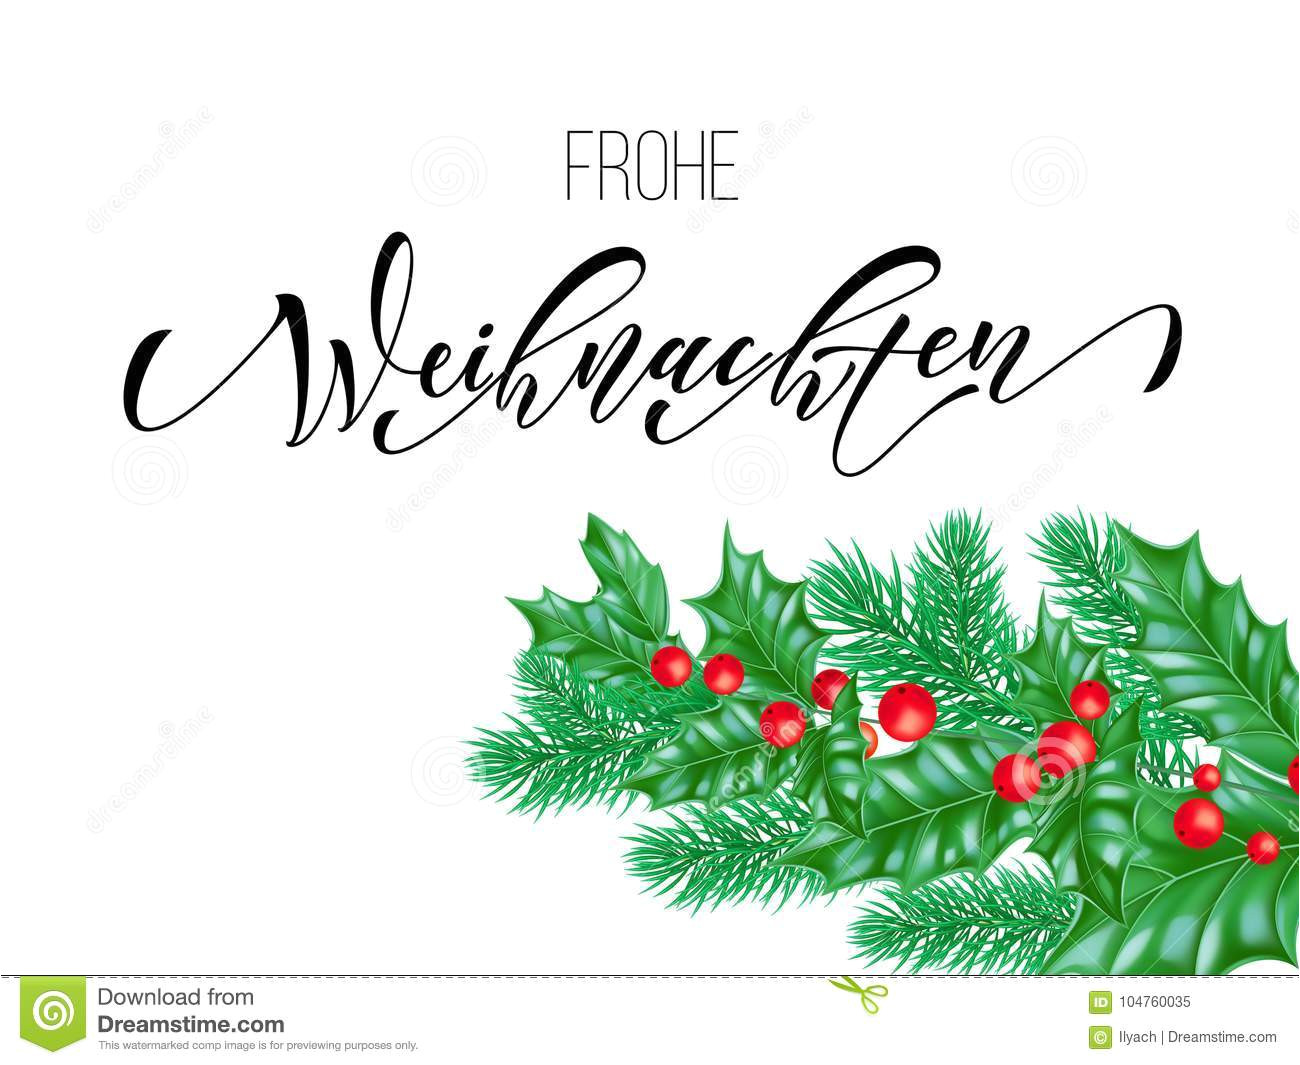 frohe weihnachten german merry christmas calligraphy font white premium background winter xmas holiday design template 104760035 jpg